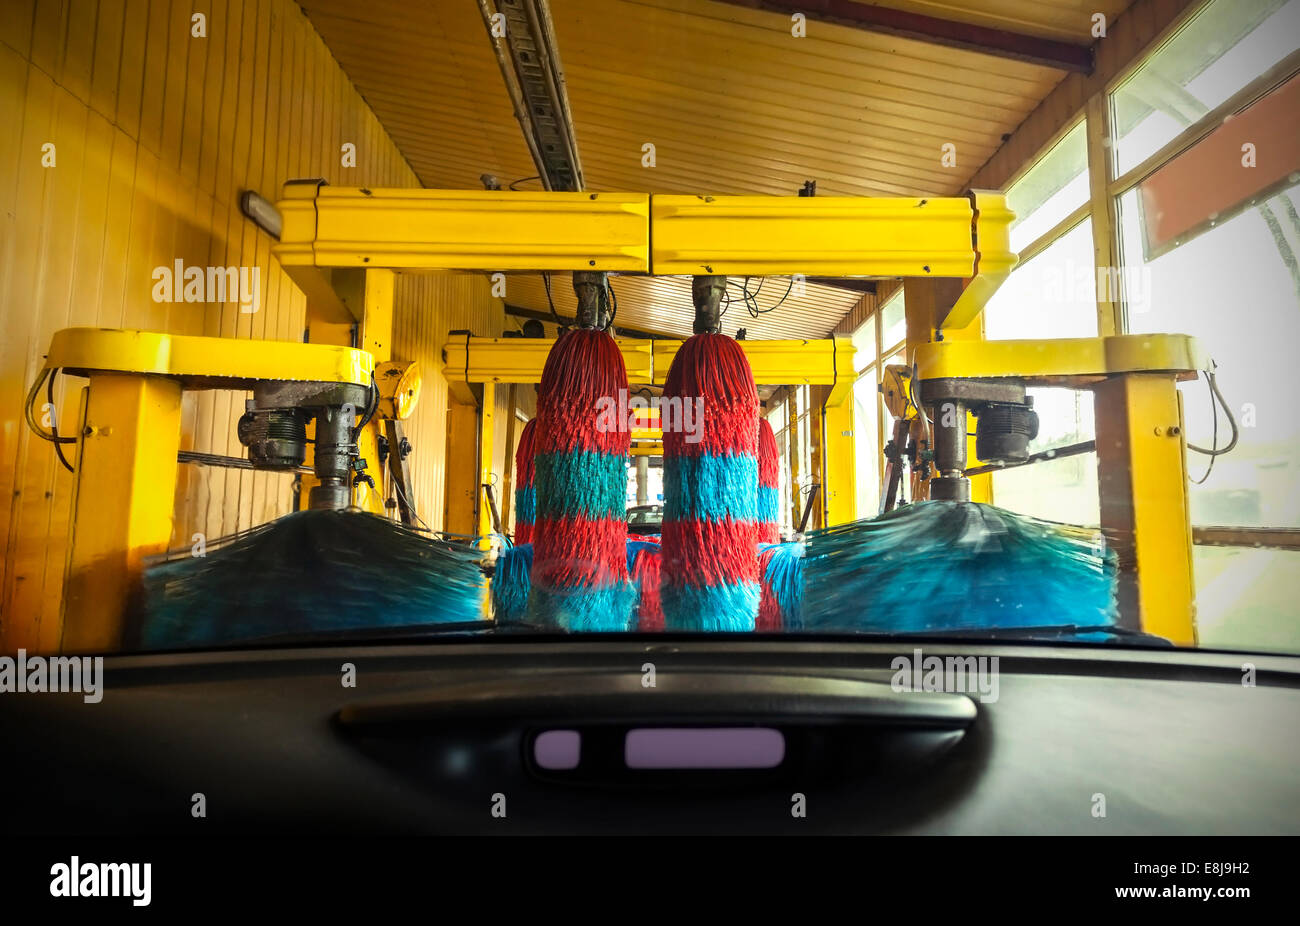 Car wash from inside a car during the wash. - Stock Image